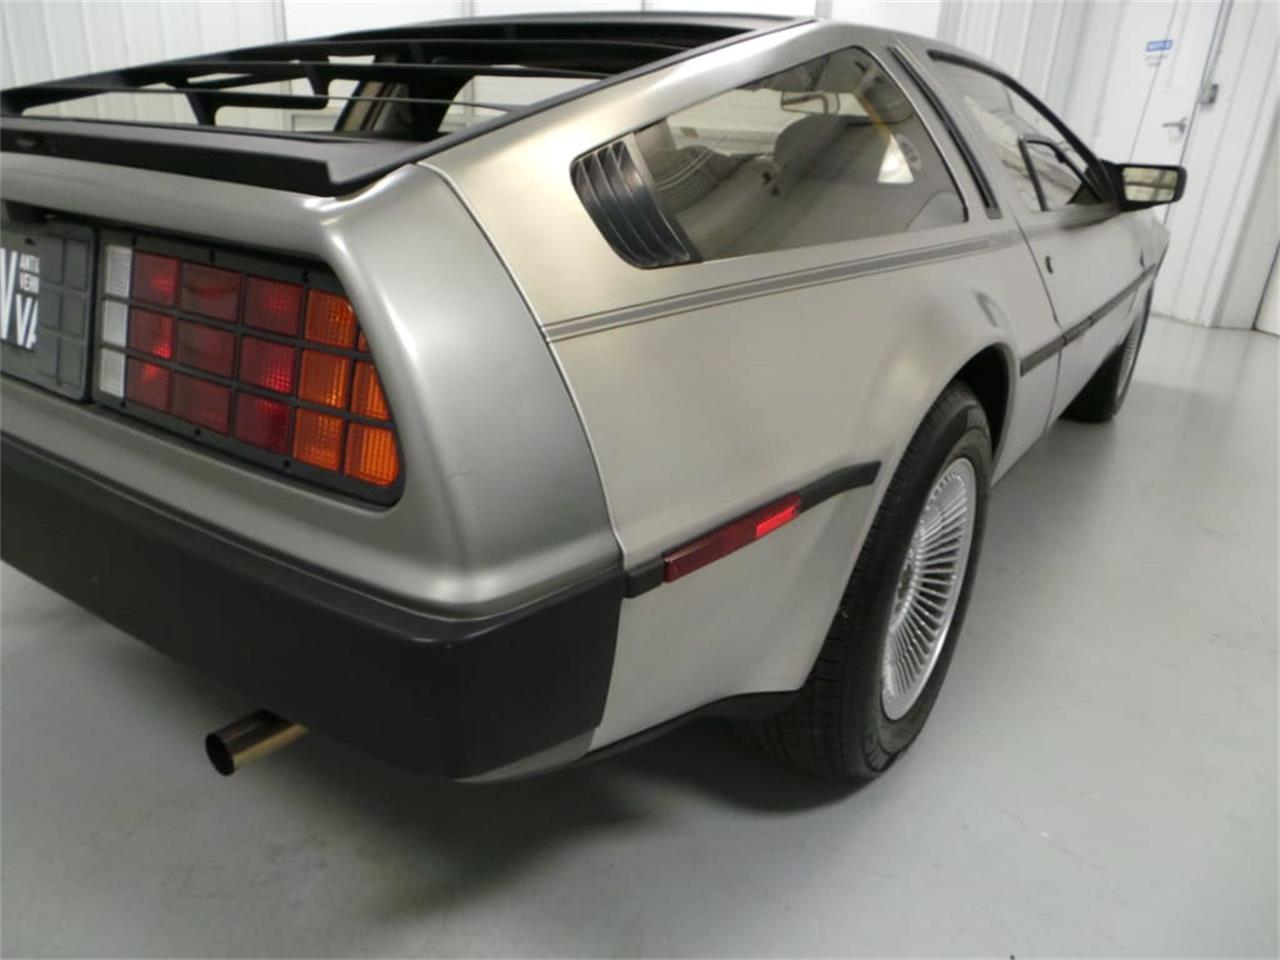 Large Picture of 1981 DeLorean DMC-12 located in Christiansburg Virginia - $42,000.00 Offered by Duncan Imports & Classic Cars - JLCI